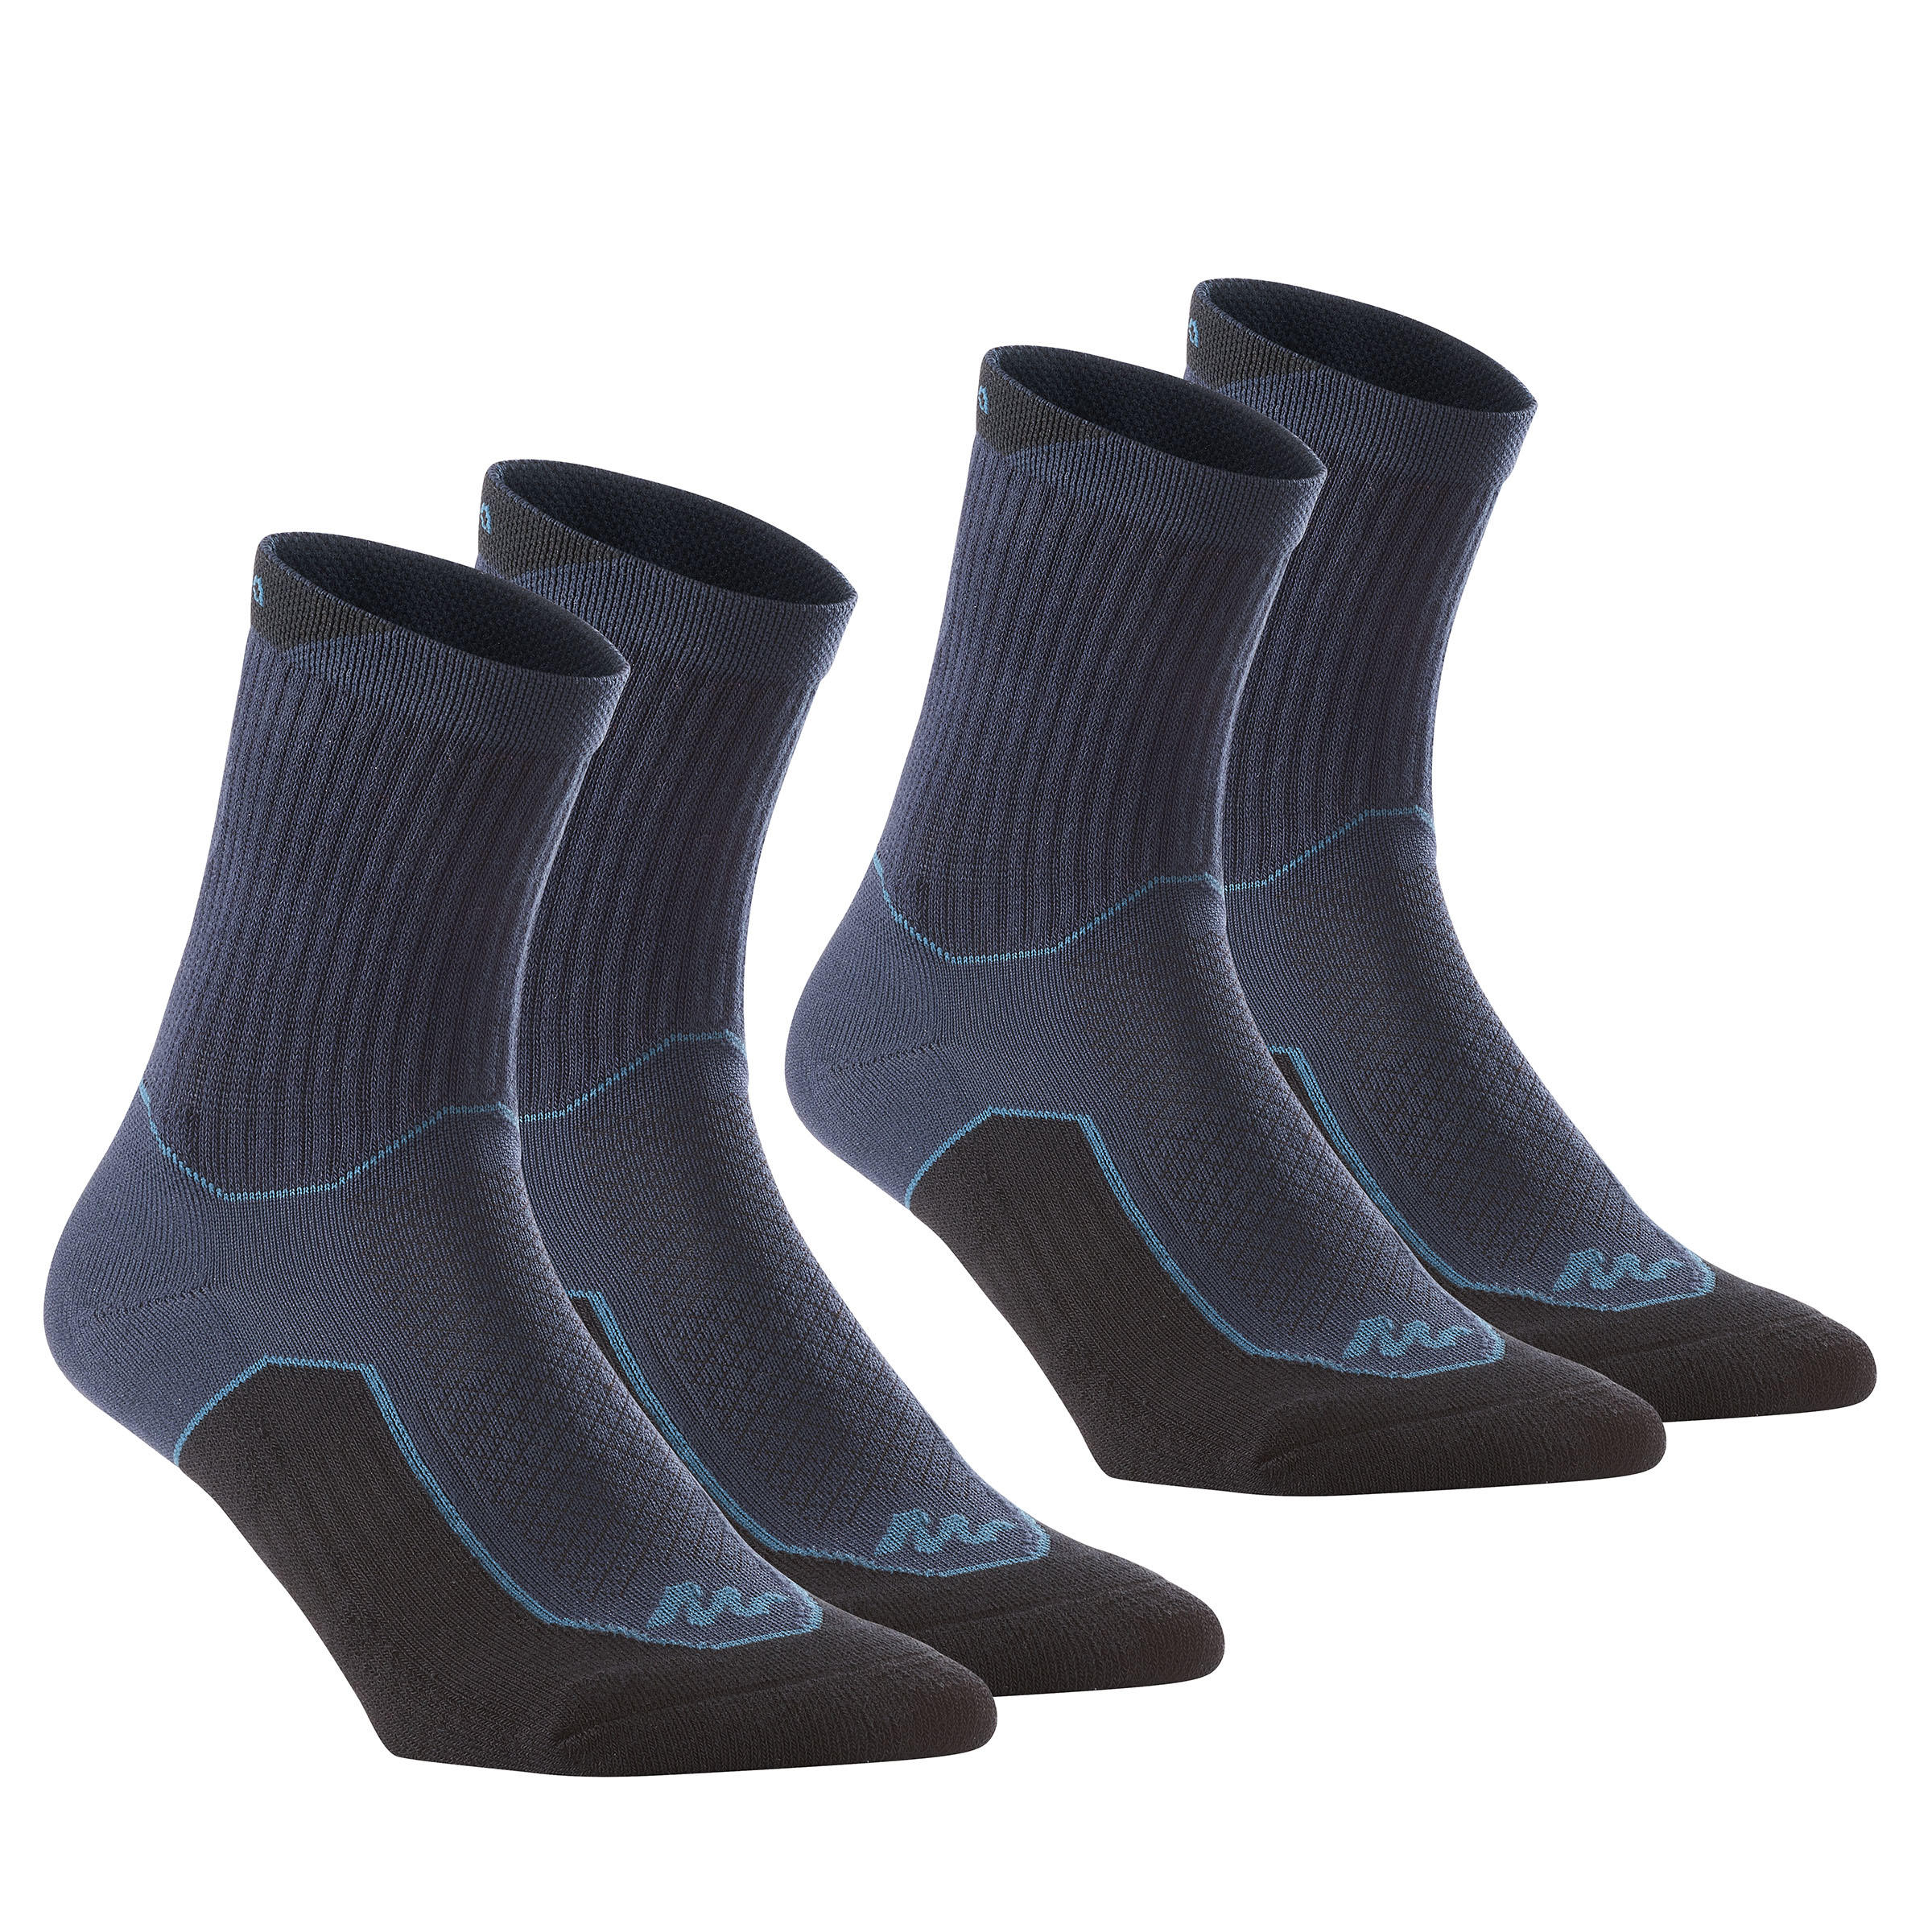 High upper Nature Hiking Socks. Arpenaz 50 2 Pairs - Navy